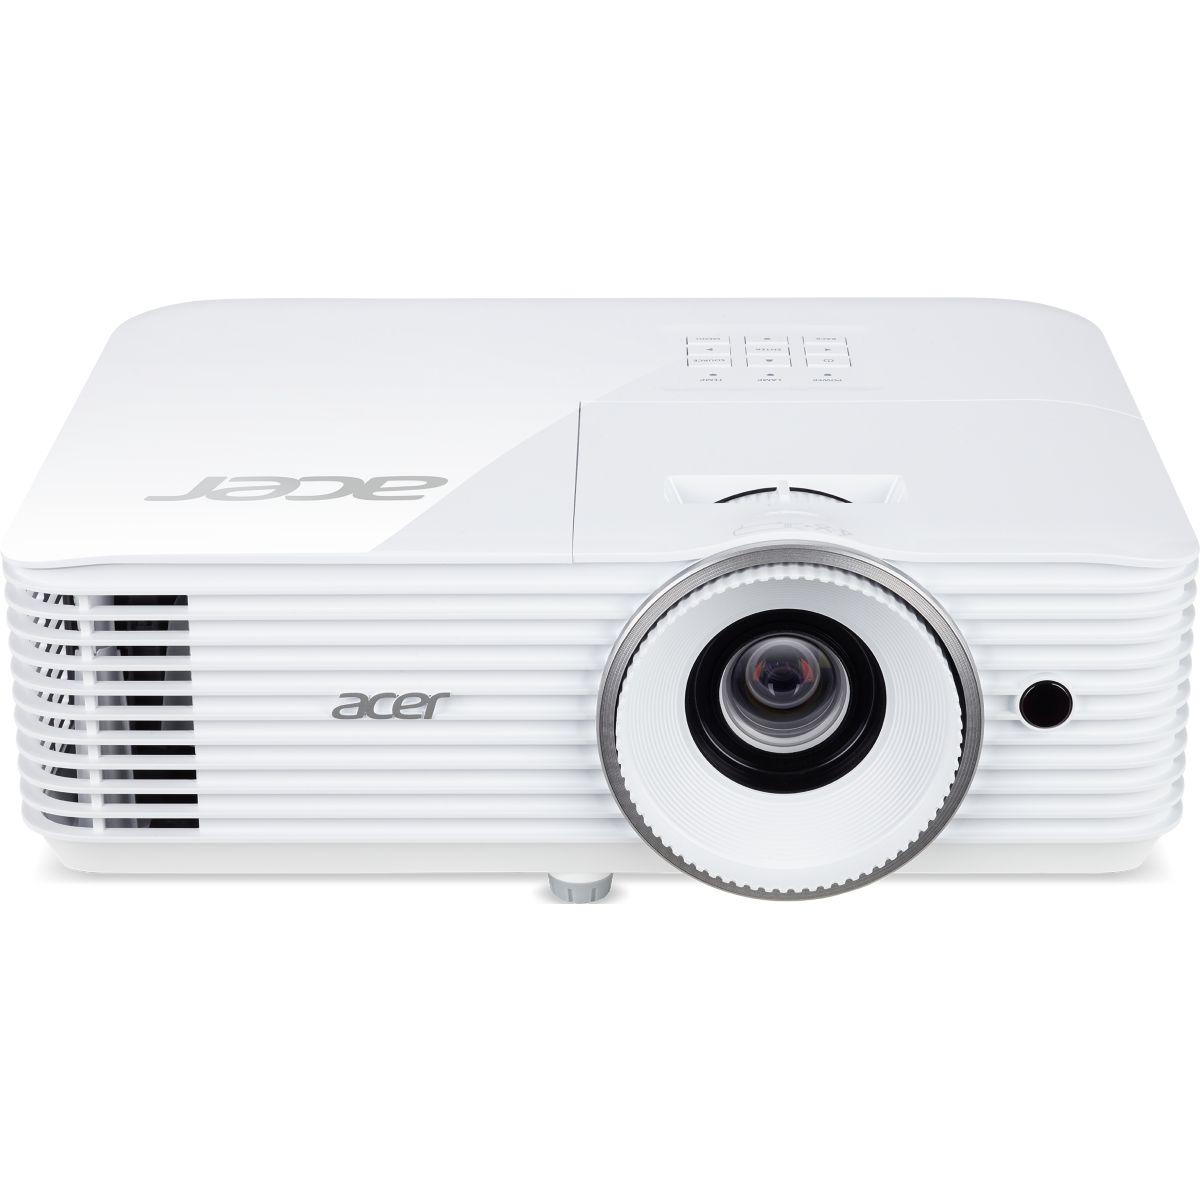 Vid�oprojecteur home cin�ma acer gm512 fullhd+ (photo)